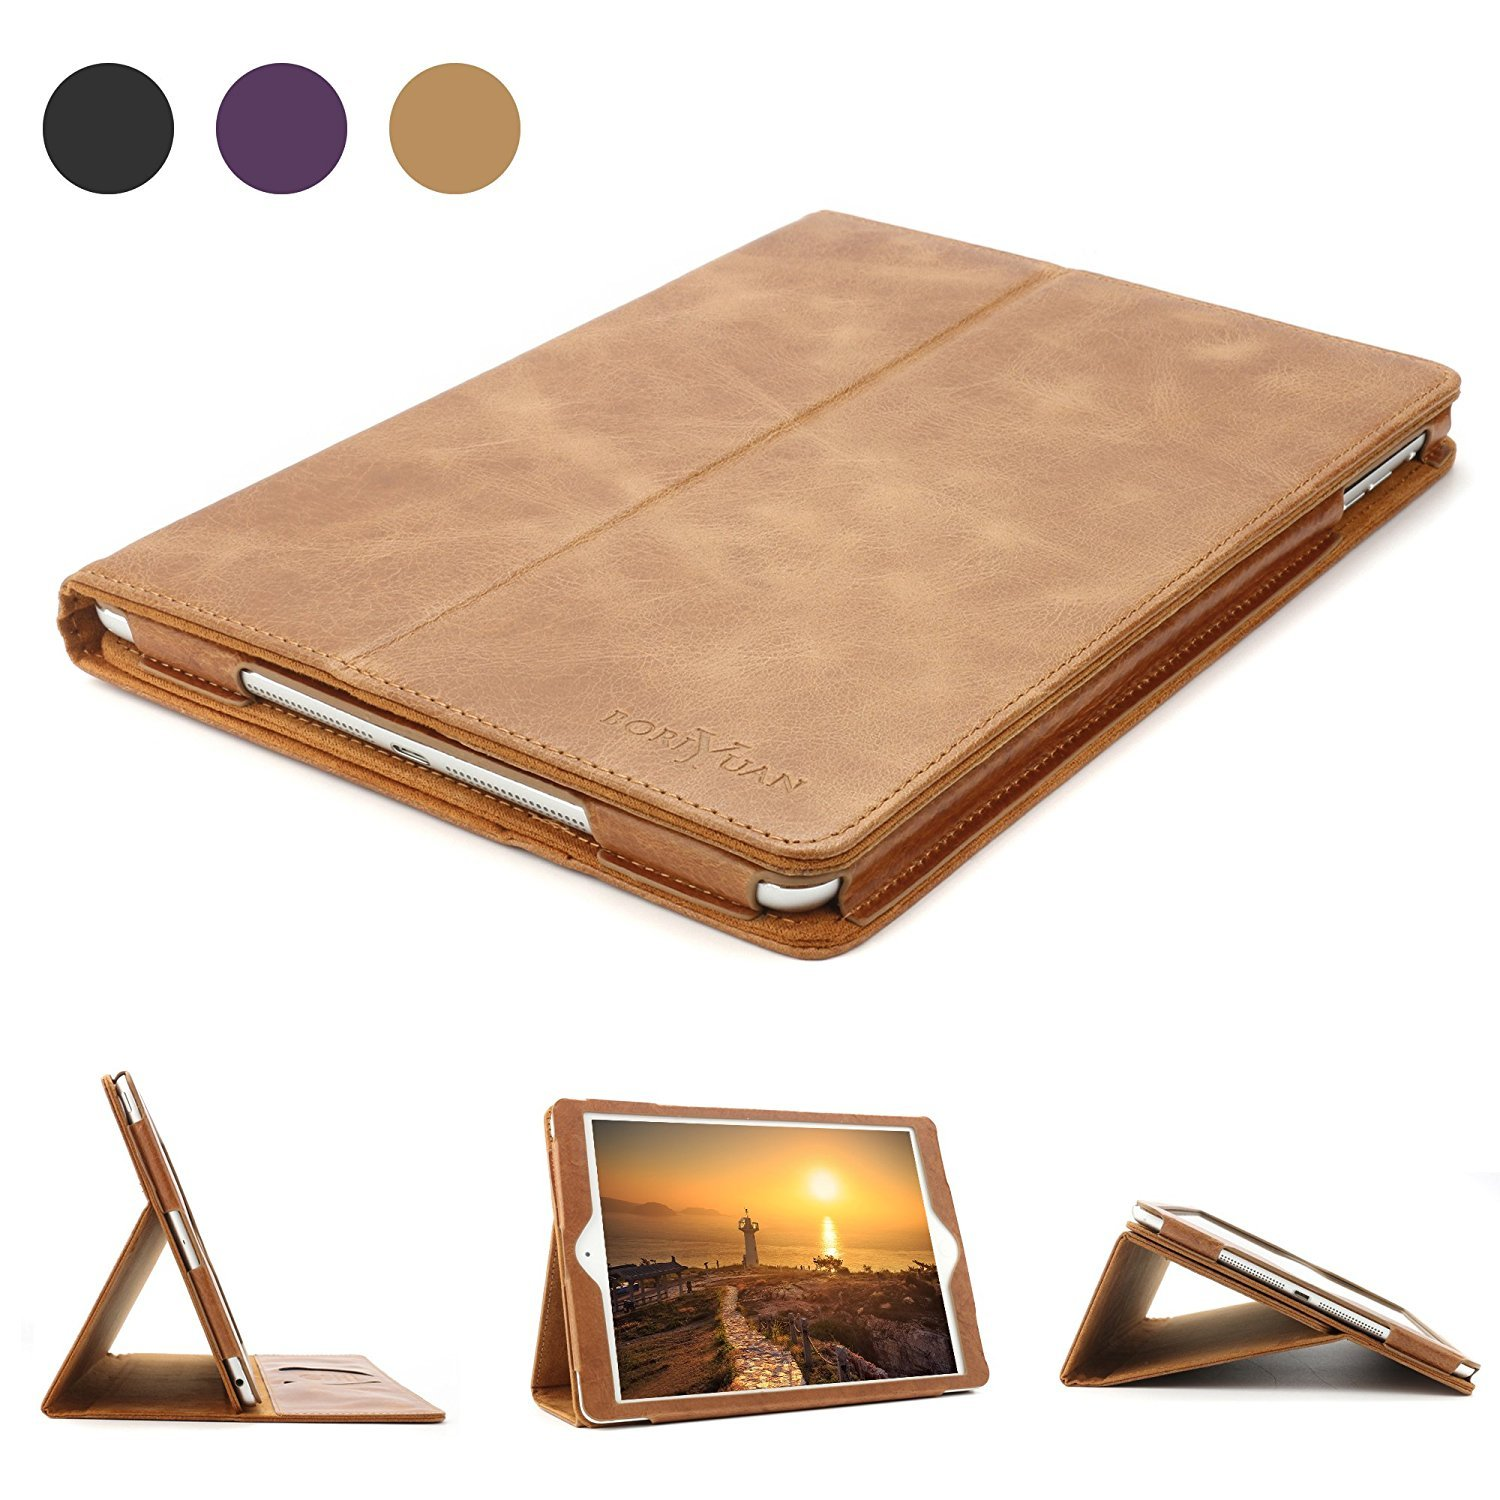 iPad 9.7 Leather Case, BoriYuan Vintage Genuine Leather Smart Cover Protective Slim Folio Flip Stand for Apple iPad 9.7 Inch with Card Slot Magnetic Sleep/Wake+Stylus+Screen Protector (Brown)